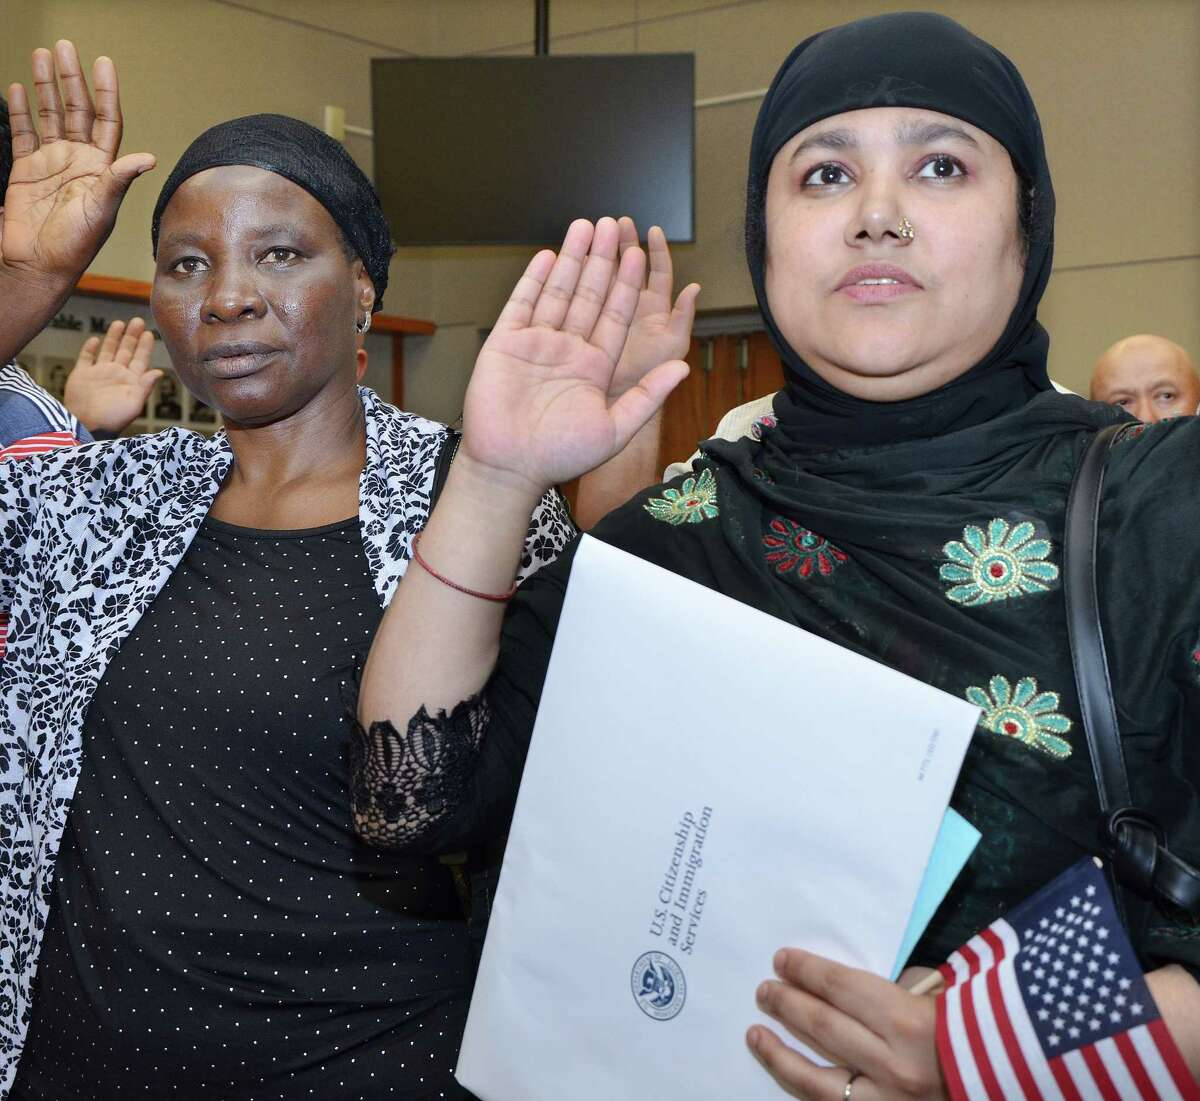 July 2, 2014 - New citizens, Bridgeport resident Amina Begum, of Bangladesh, at right and New Haven resident Zainab Ahmed Saido, of Nigeria raise their right hand as Judge Stefan Underhill administers the Oath of Allegiance at the Naturalization Ceremony at Middletown City Hall Wednesday afternoon. (Catherine Avalone/The Middletown Press)